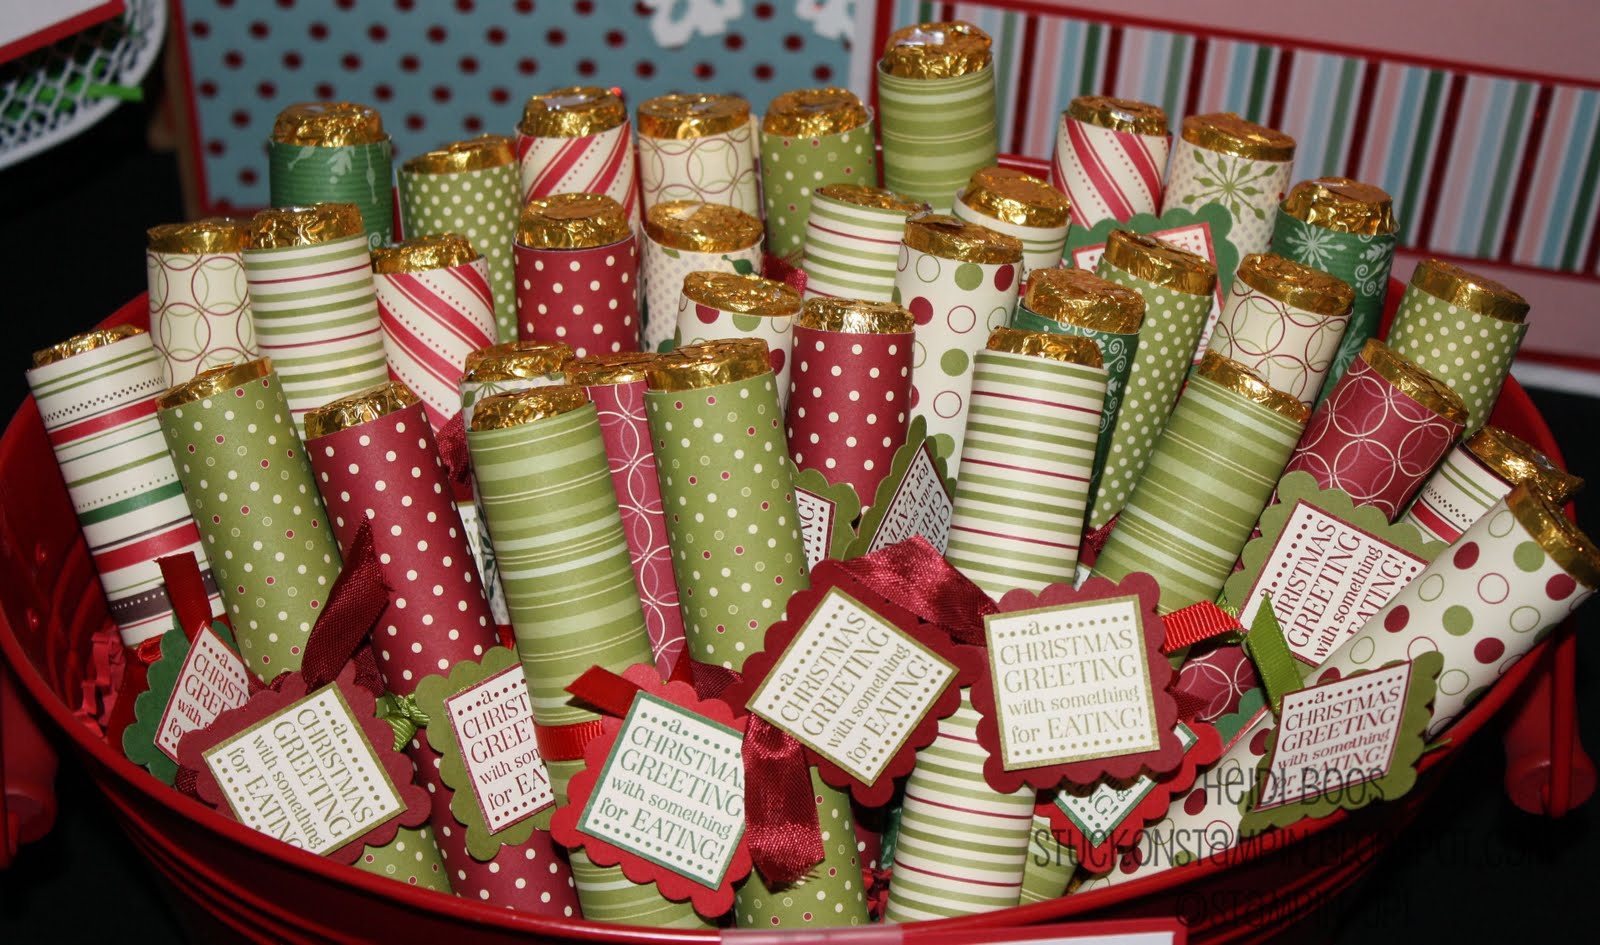 Creative gift ideas for the 12 days of christmas